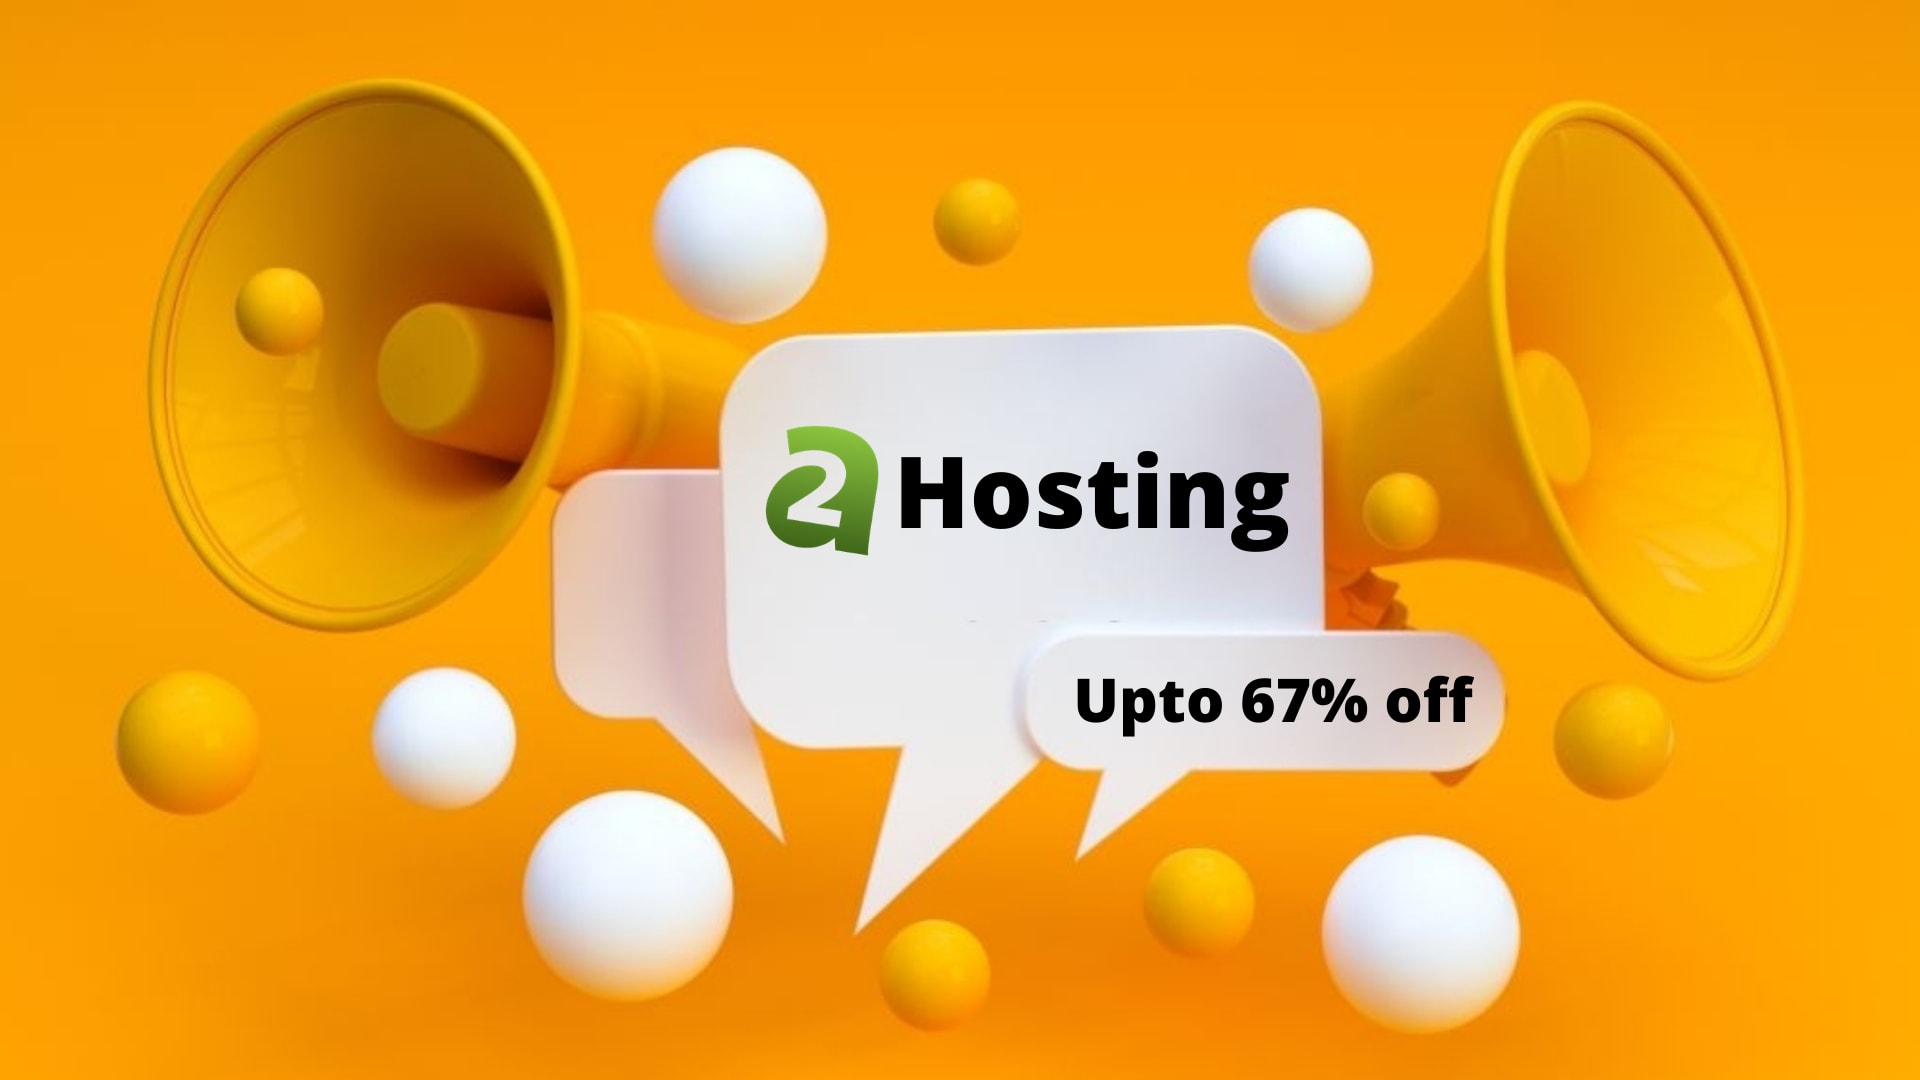 A2 hosting black deal 2020 - Top 10 Black Friday Hosting Deals 2020